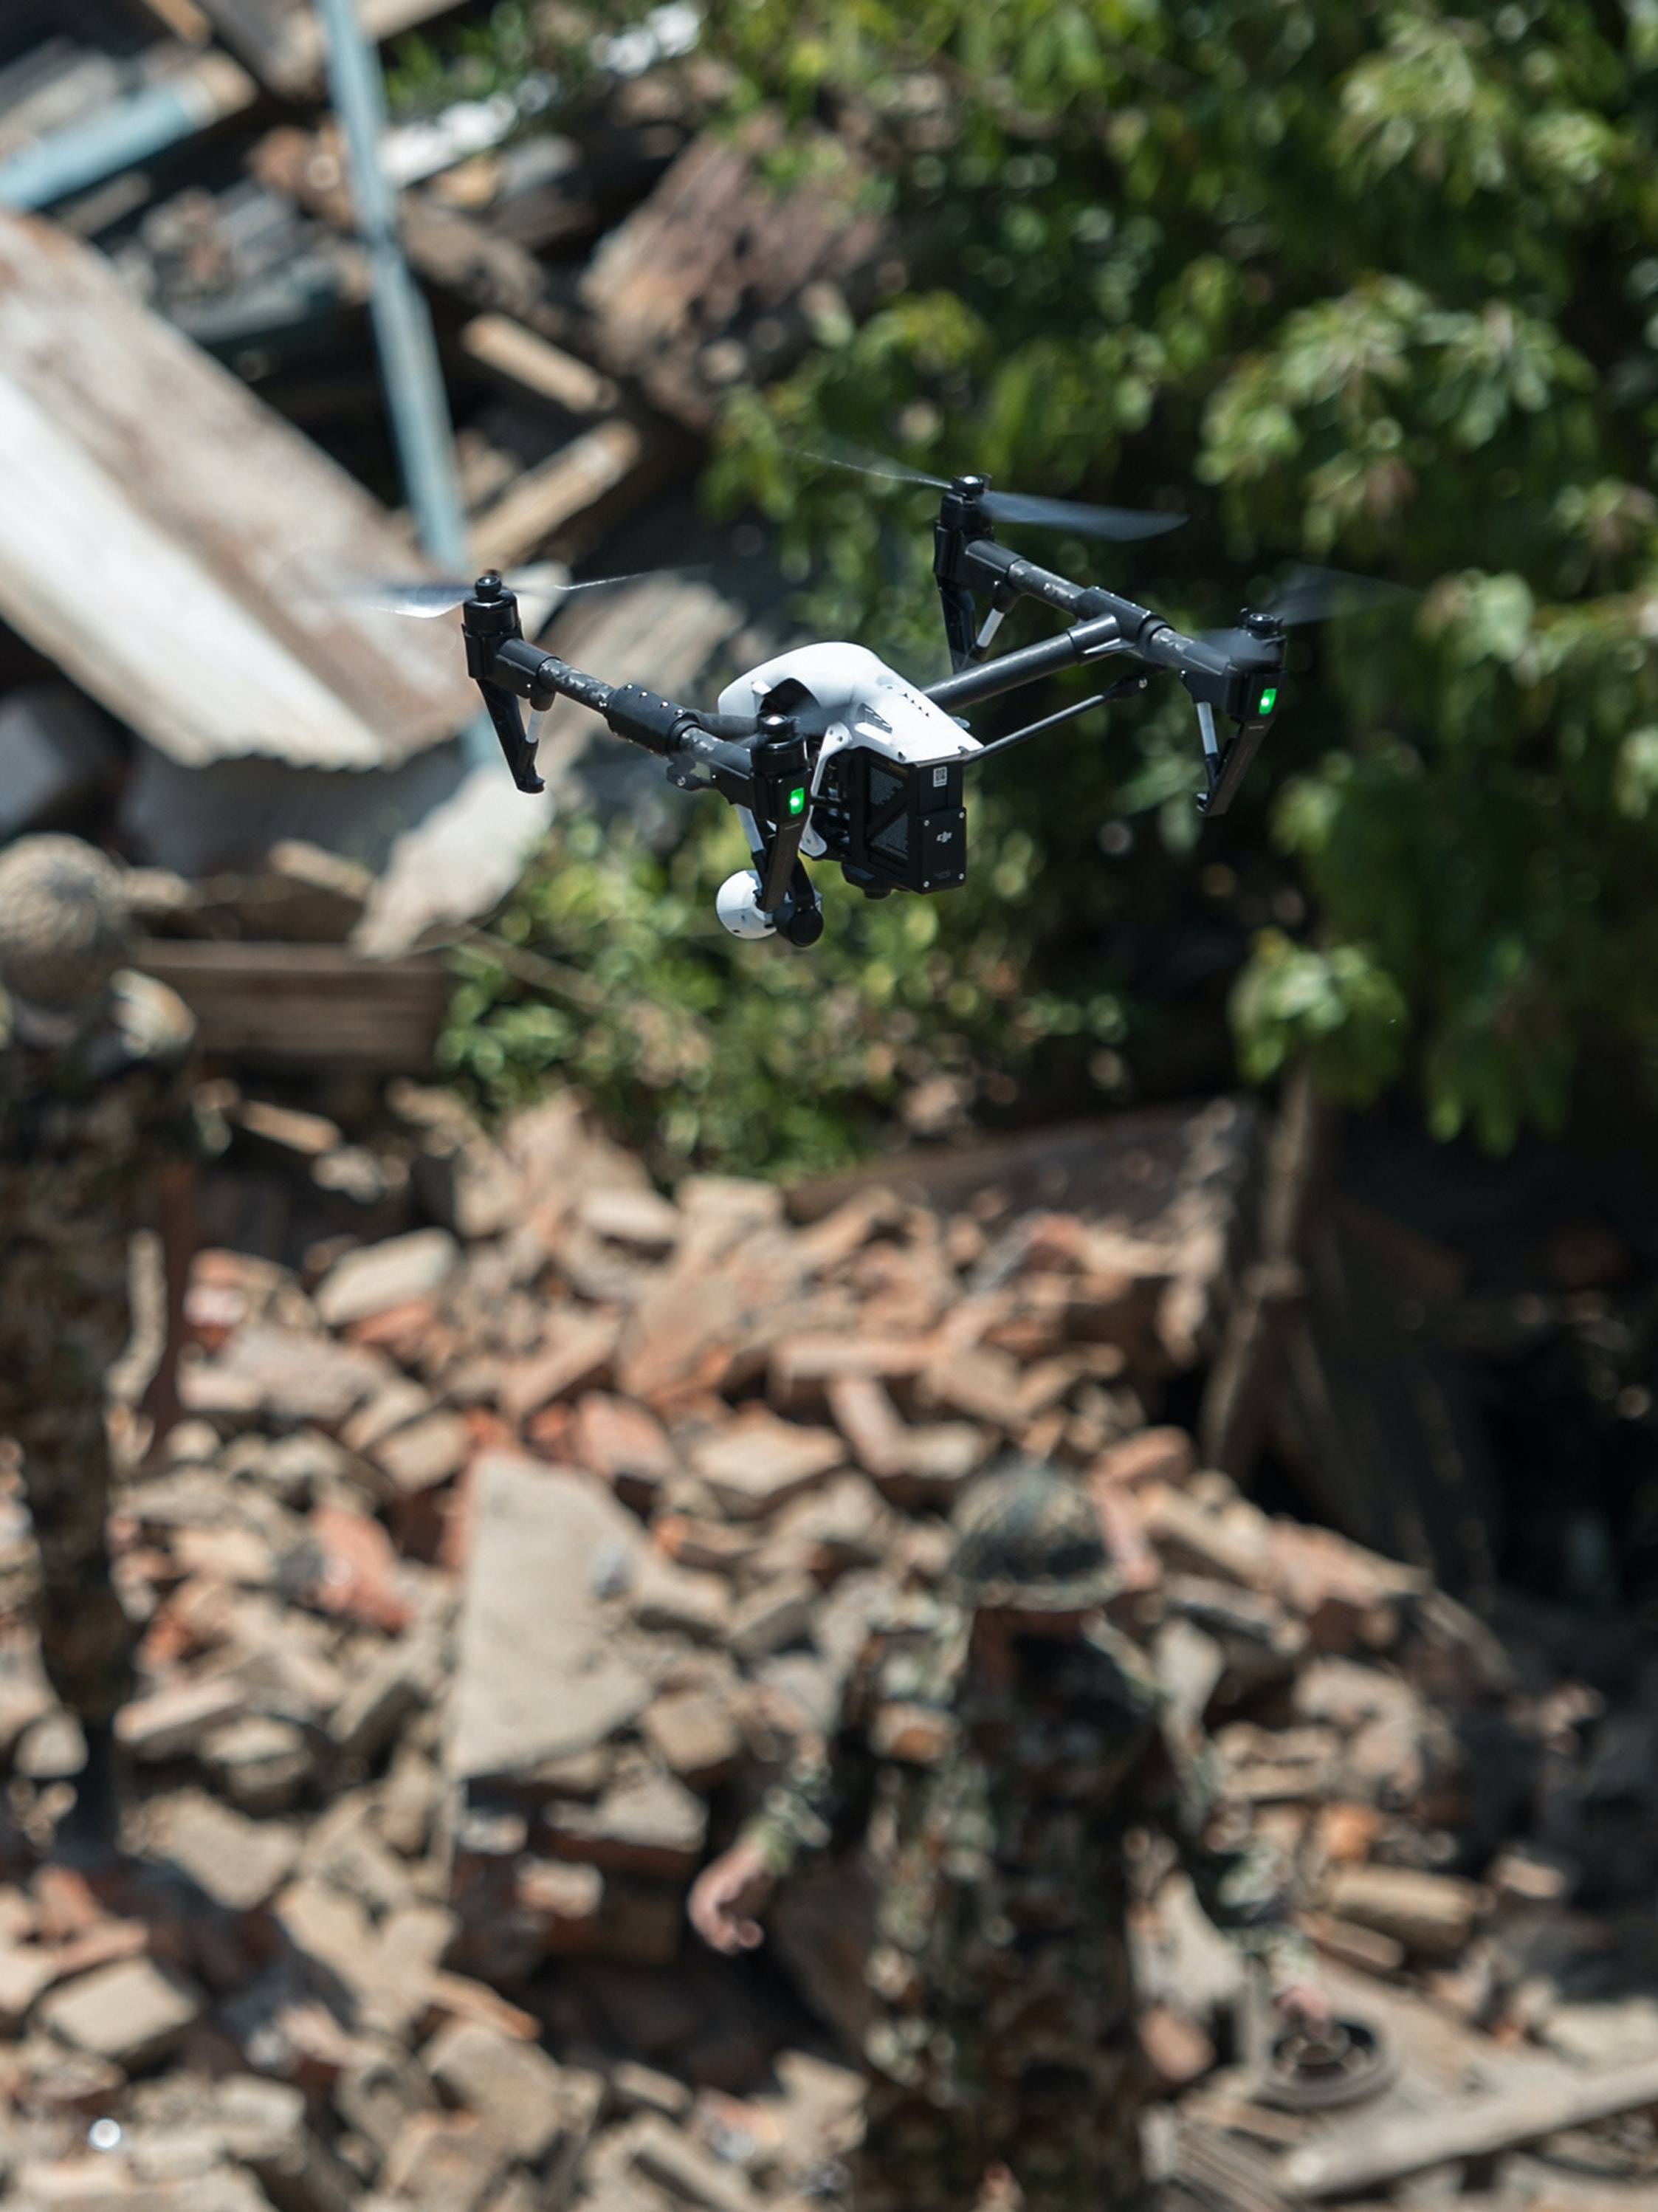 SANKHU, NEPAL - MAY 02:  A drone flies over collapsed buildings during removal operations on May 2, 2015 in Sankhu, Nepal. A major 7.8 earthquake hit Kathmandu mid-day on Saturday, and was followed by multiple aftershocks that triggered avalanches on Mt. Everest that buried mountain climbers in their base camps. Many houses, buildings and temples in the capital were destroyed during the earthquake, leaving over 6000 dead and many more trapped under the debris as emergency rescue workers attempt to clear debris and find survivors. Regular aftershocks have hampered recovery missions as locals, officials and aid workers attempt to recover bodies from the rubble.  (Photo by David Ramos/Getty Images)